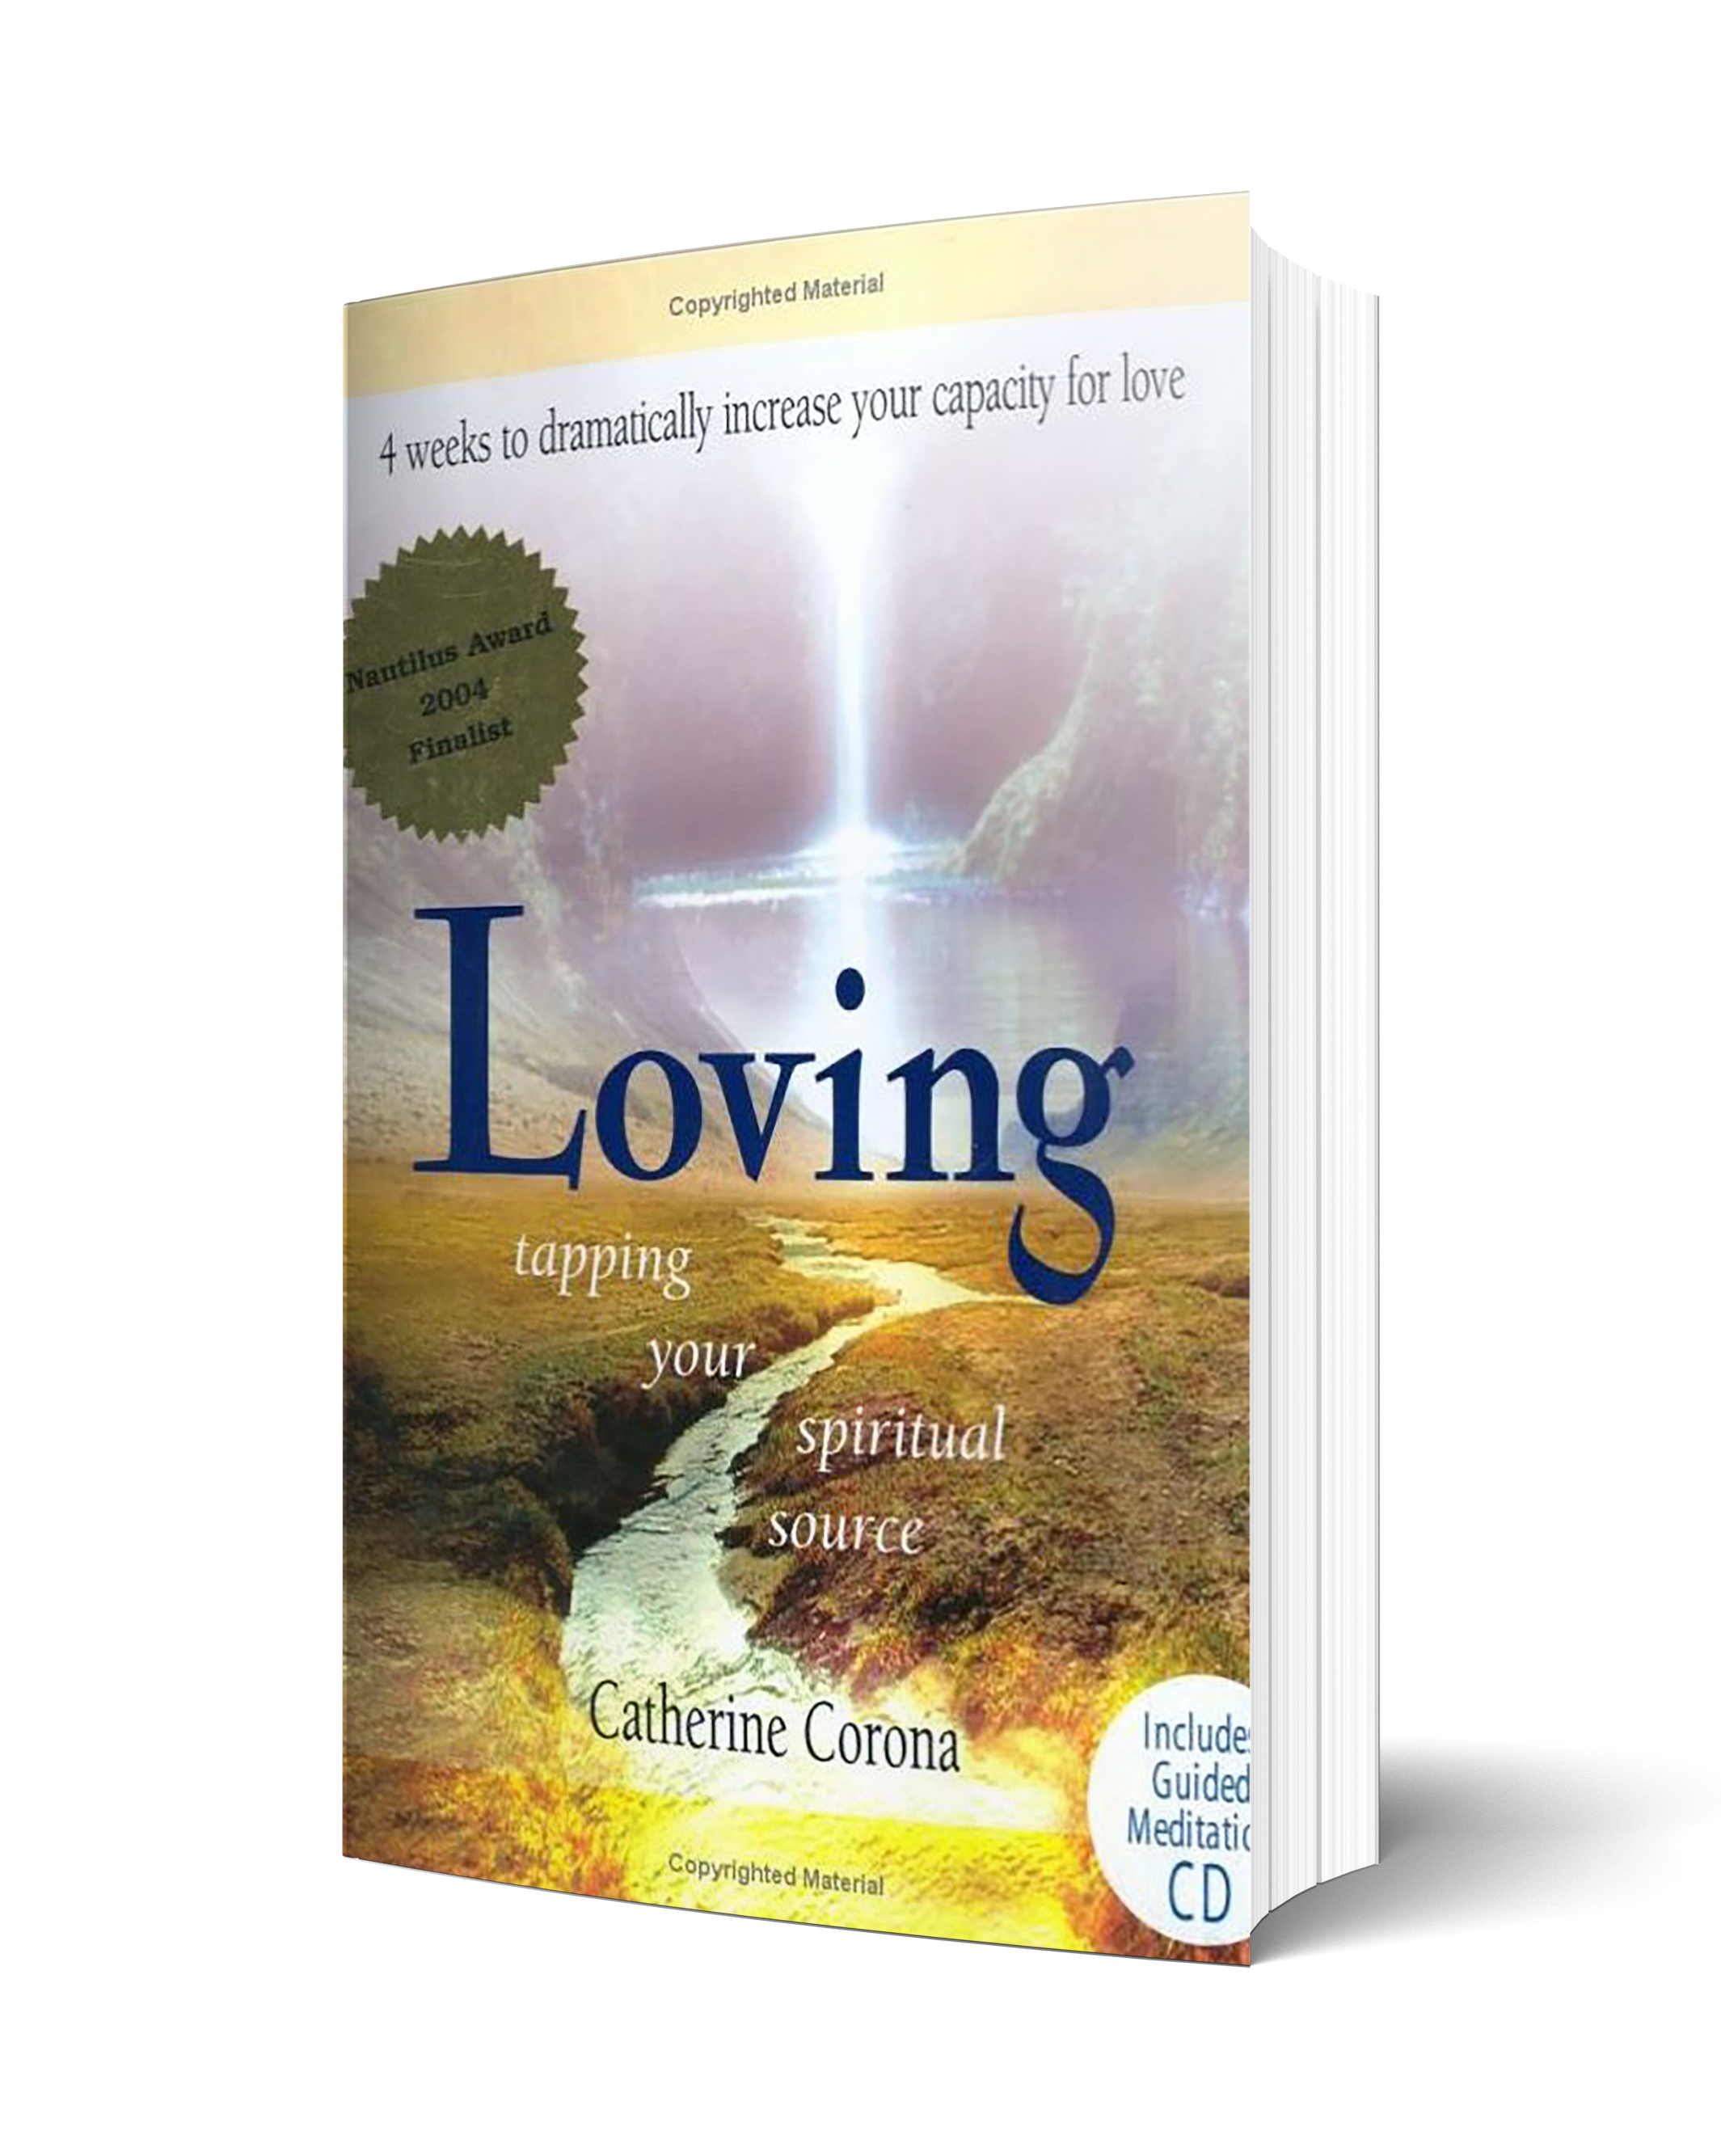 4 weeks to dramatically increase your capacity for love - INCLUDES GUIDED MEDITATION CD